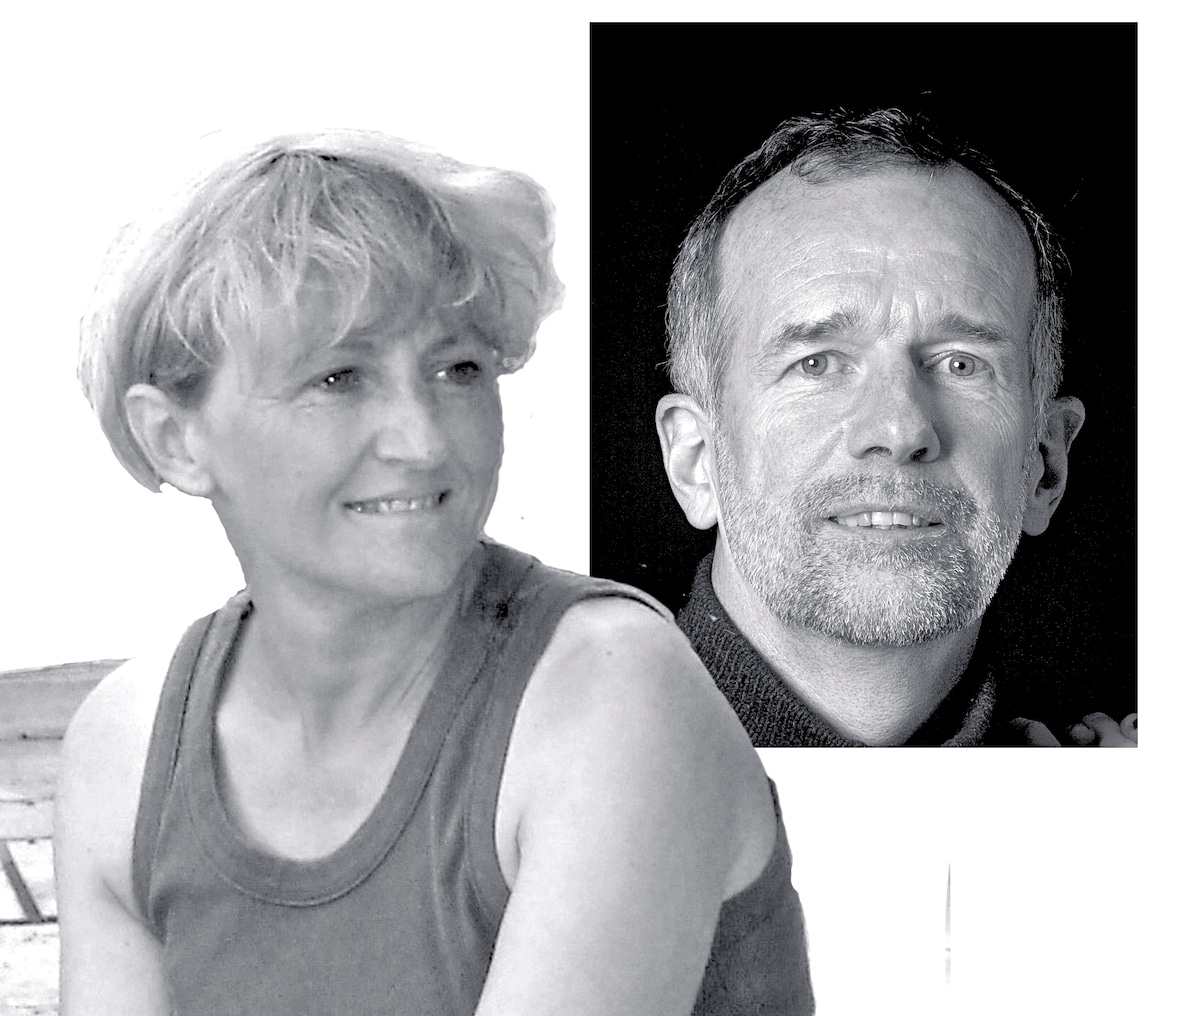 Isabelle & Philippe from Saint-Gengoux-le-National